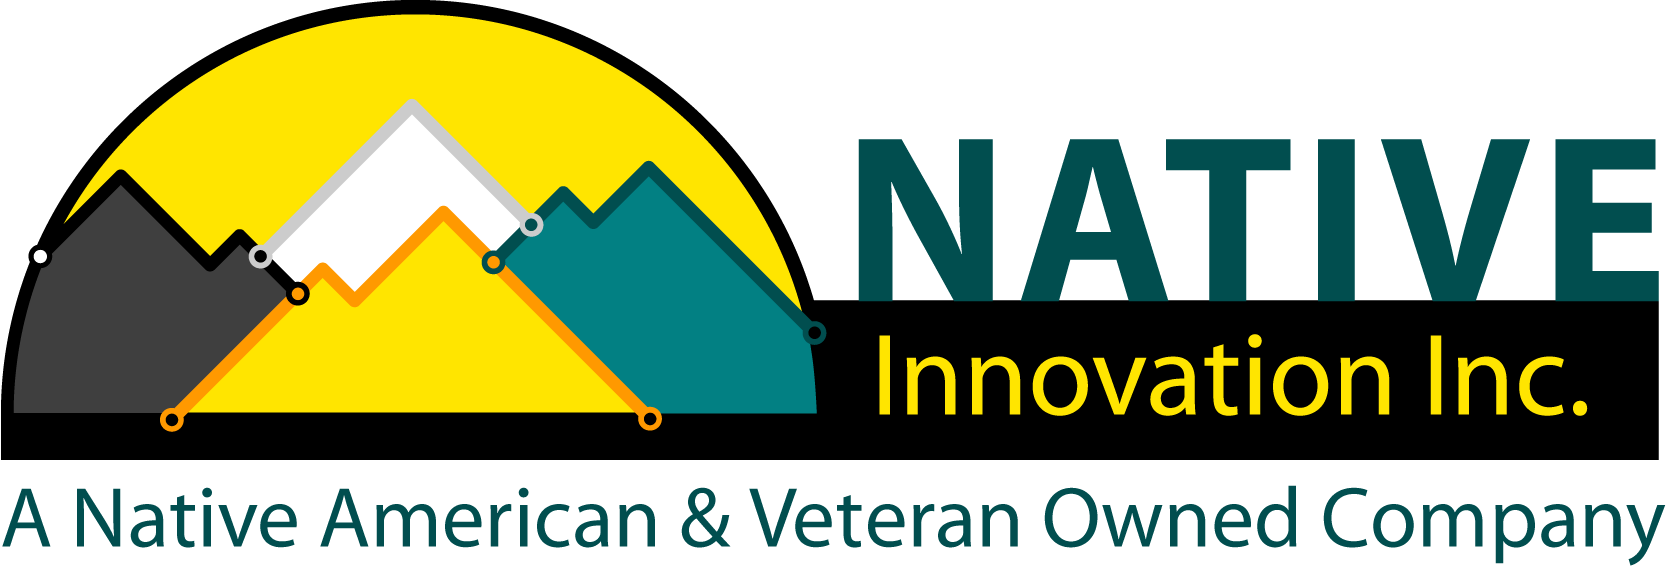 Native Innovation